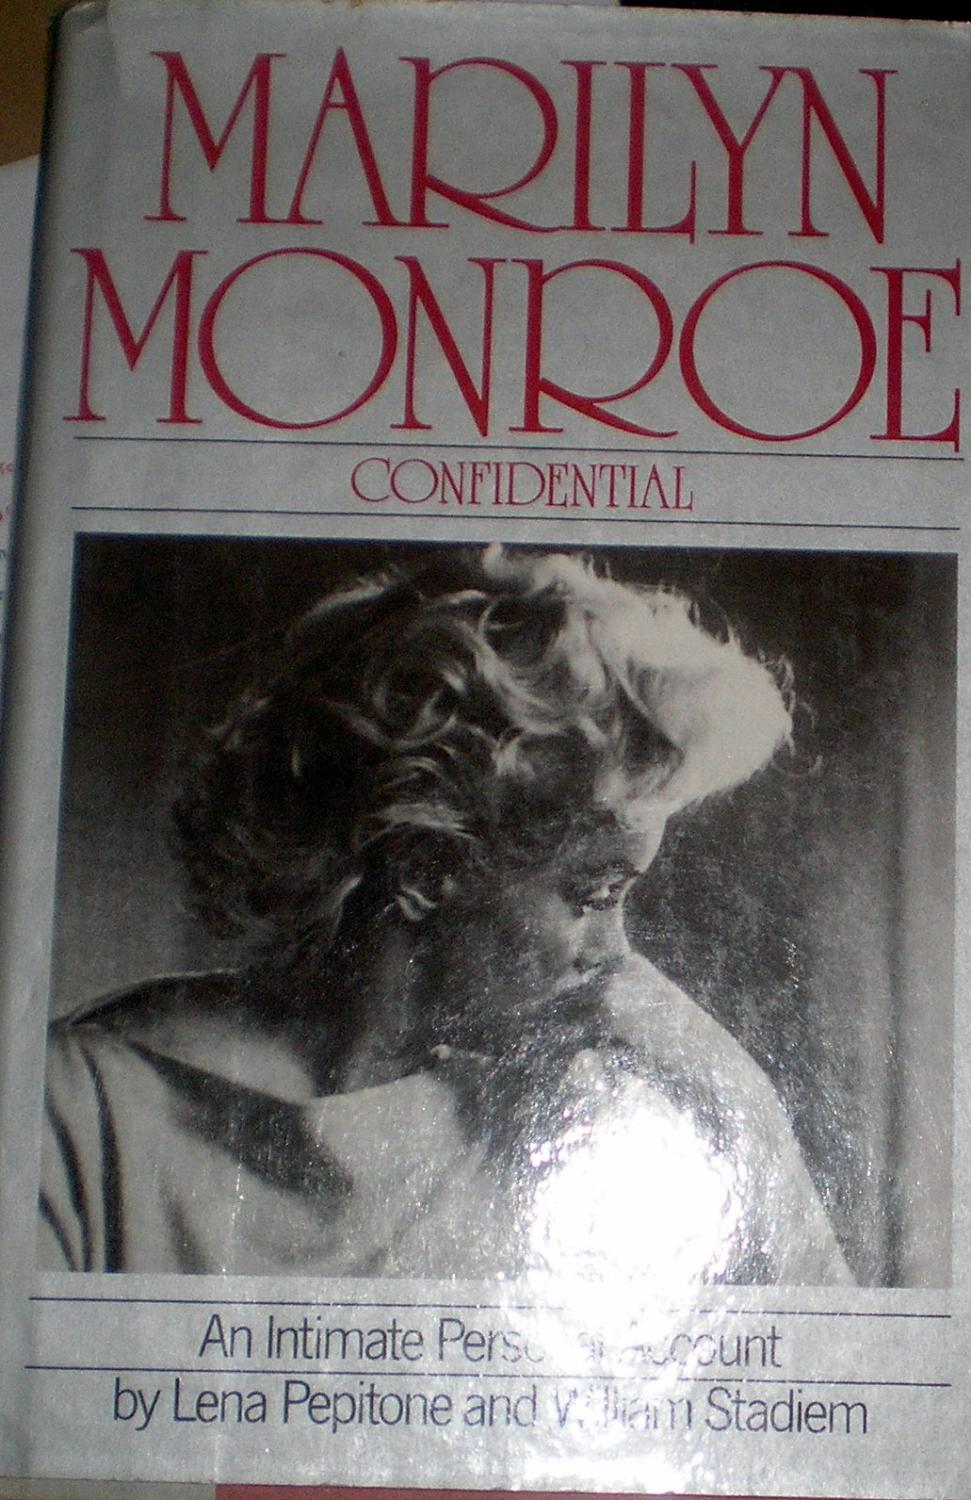 Marlyn Monroe: Confidential. - Pepitone, Lena and William Stadiem